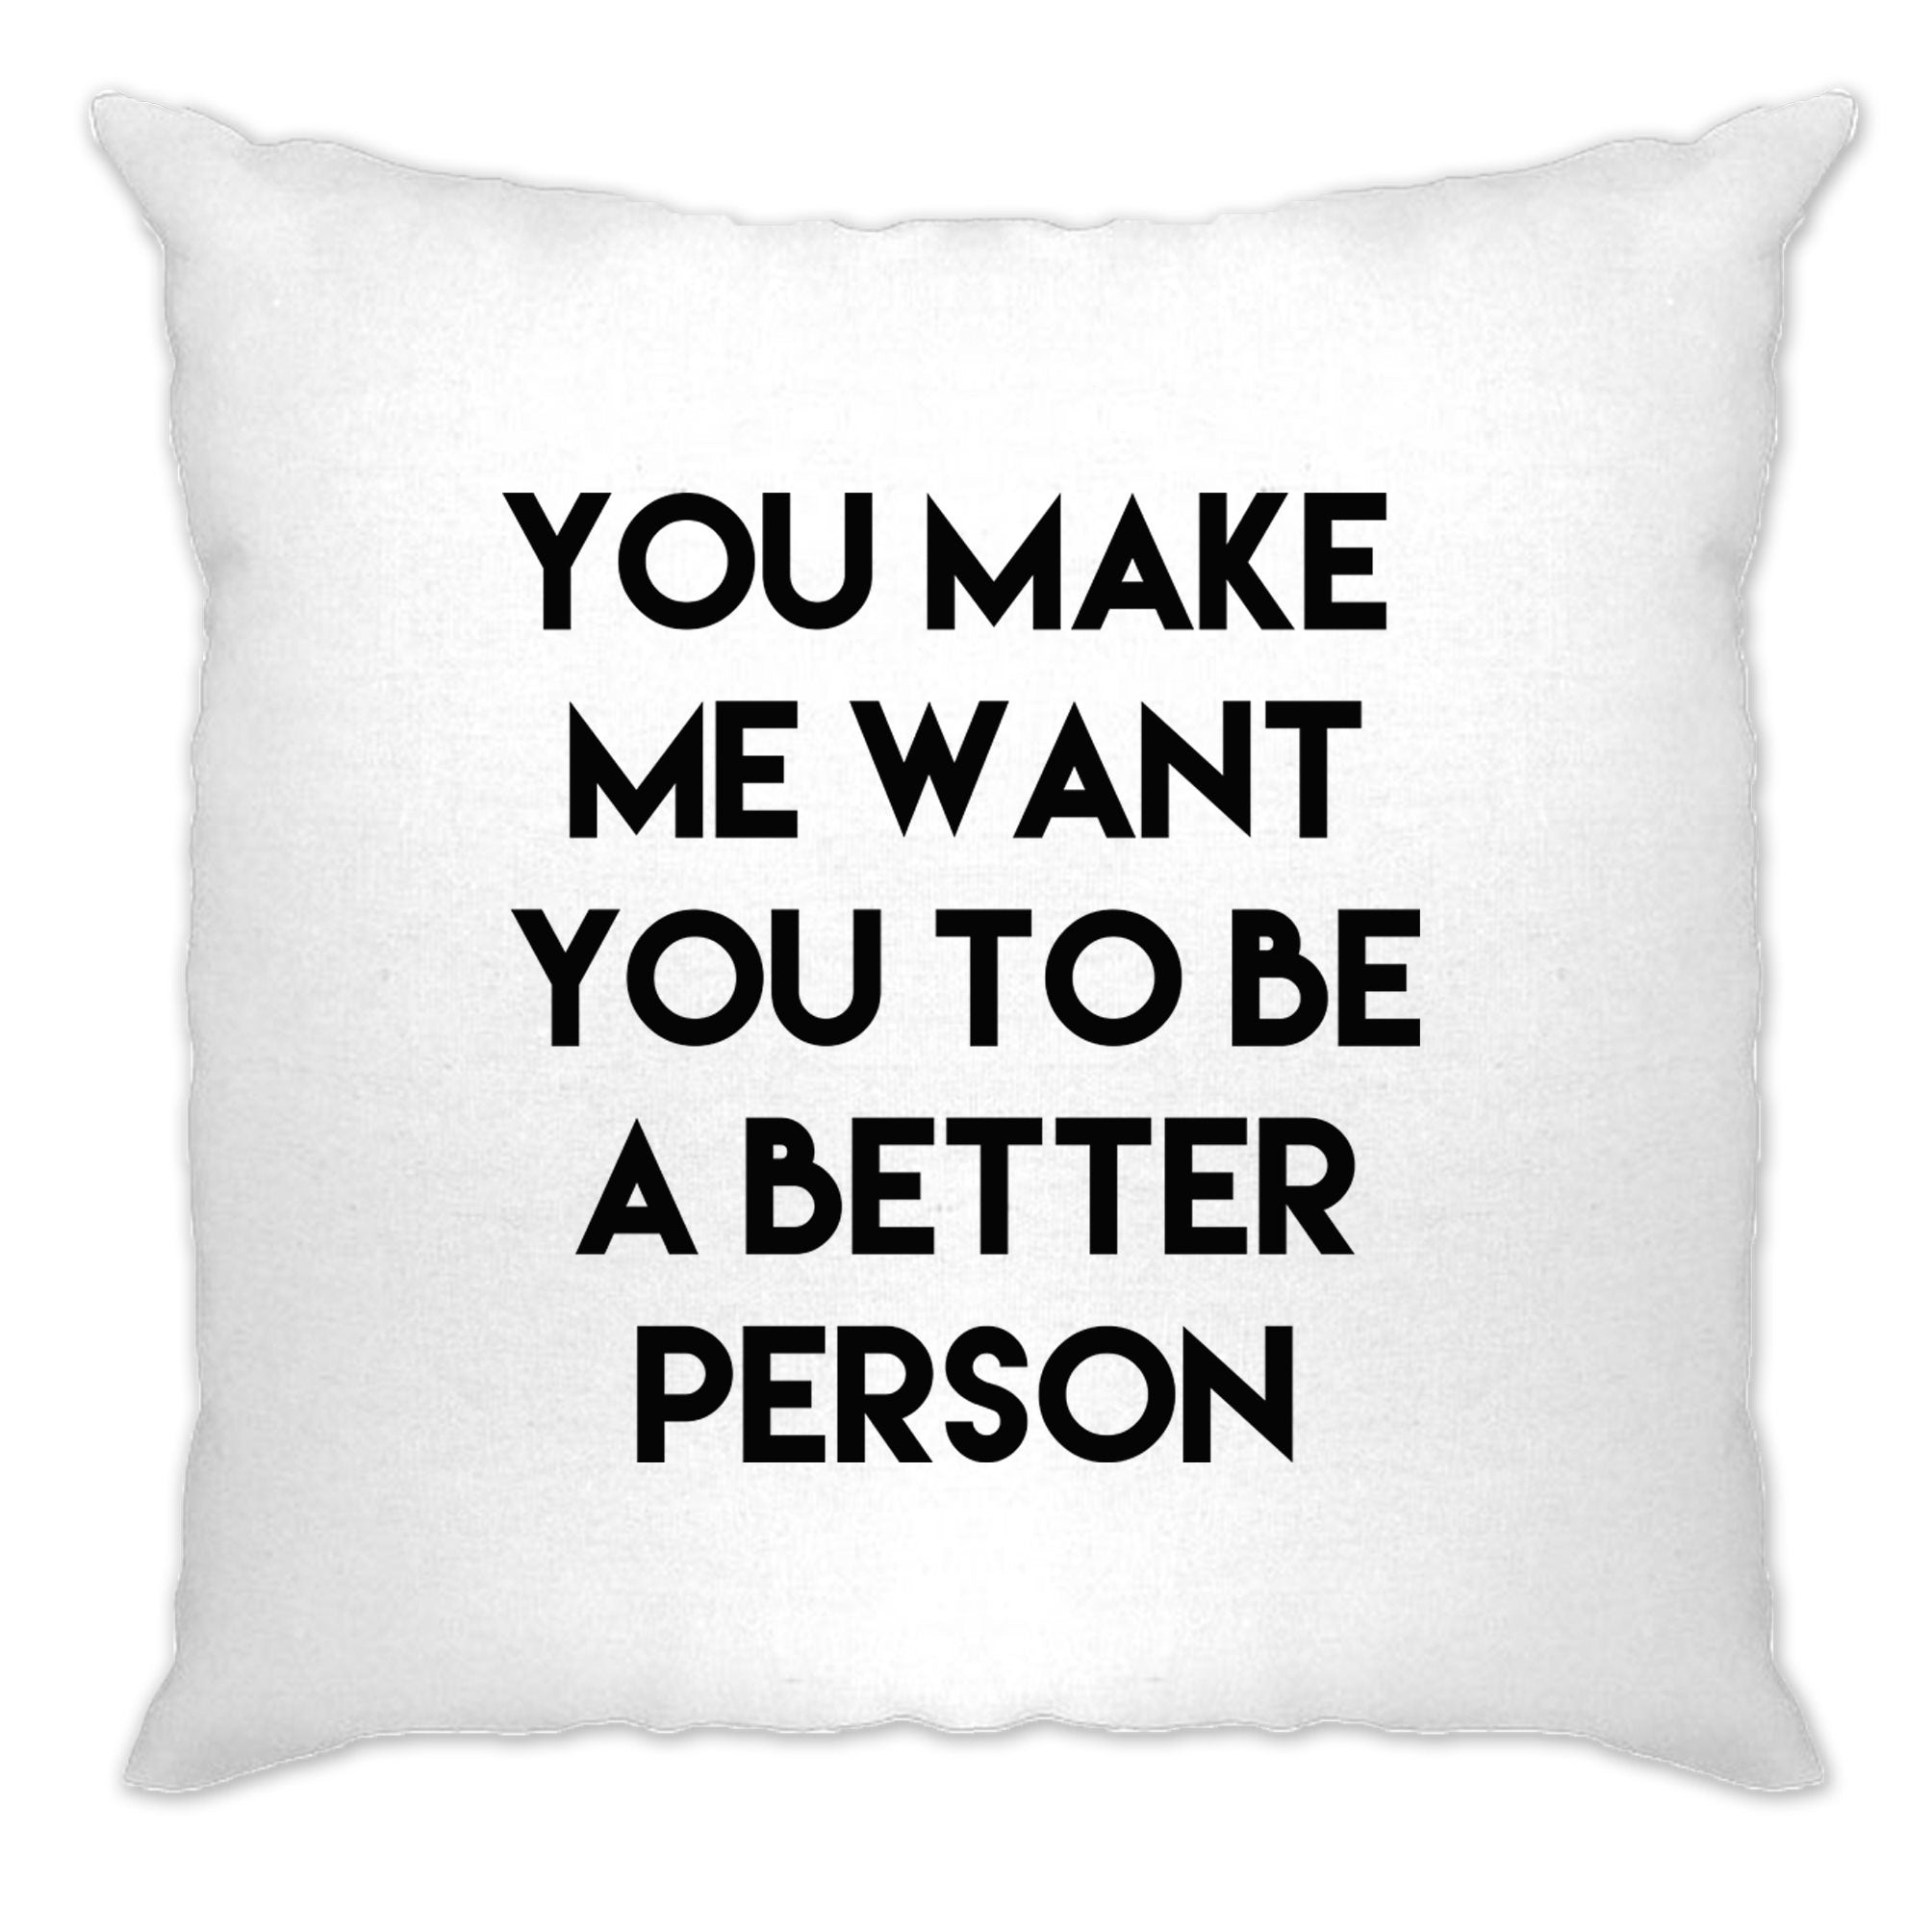 Sassy Cushion Cover You Make Me Want You To Be Better Person